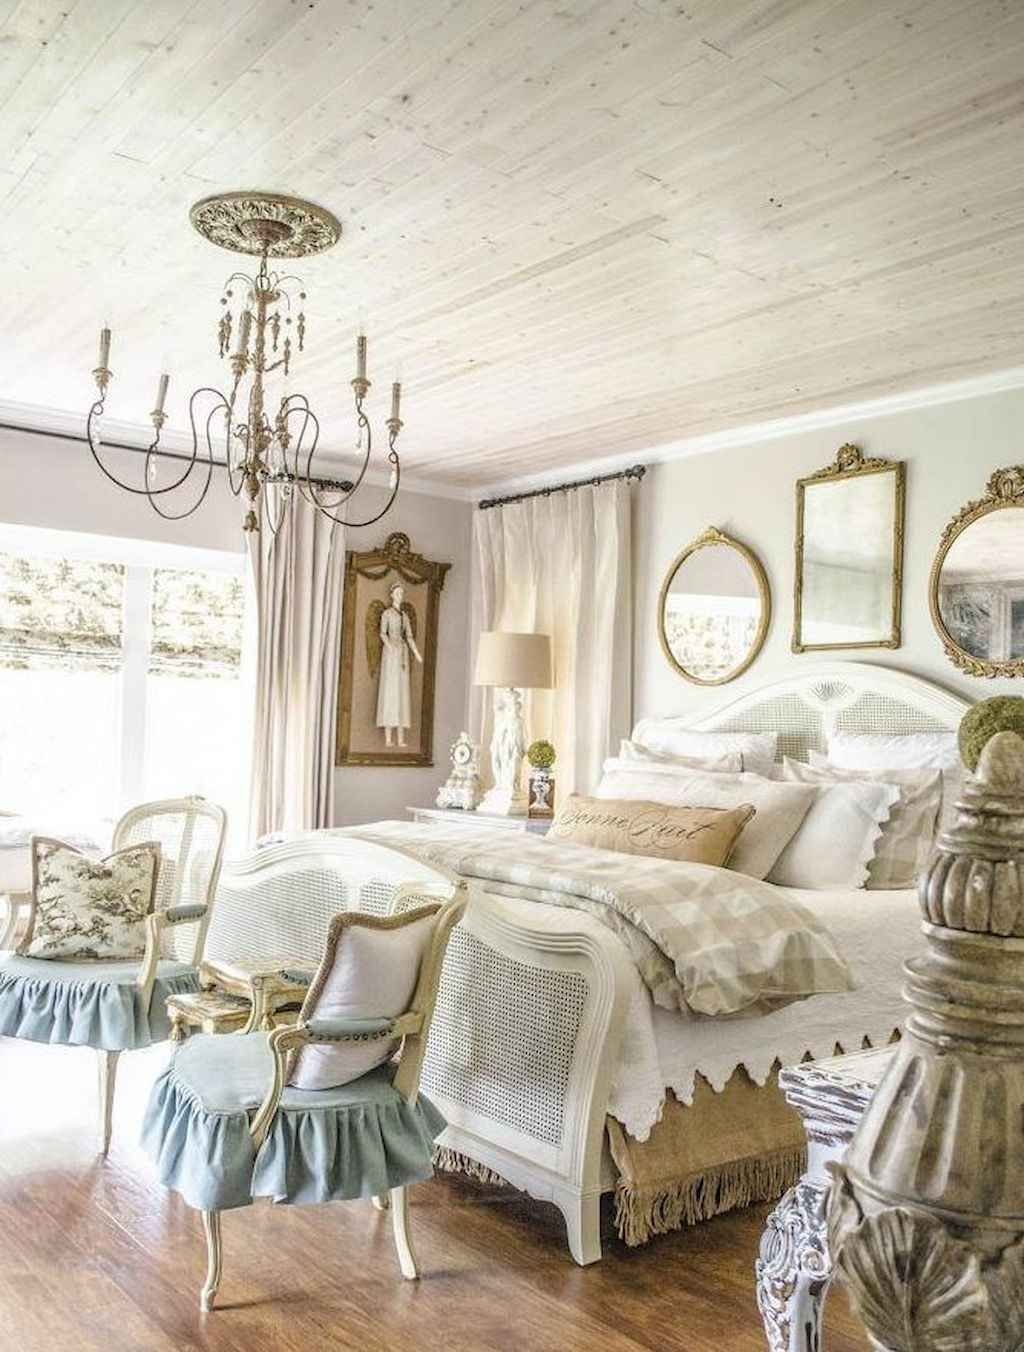 01 Affordable French Country Bedroom Decor Ideas Decoradeas French Country Decorating Bedroom French Country Bedrooms Country Bedroom Design French country bedroom design